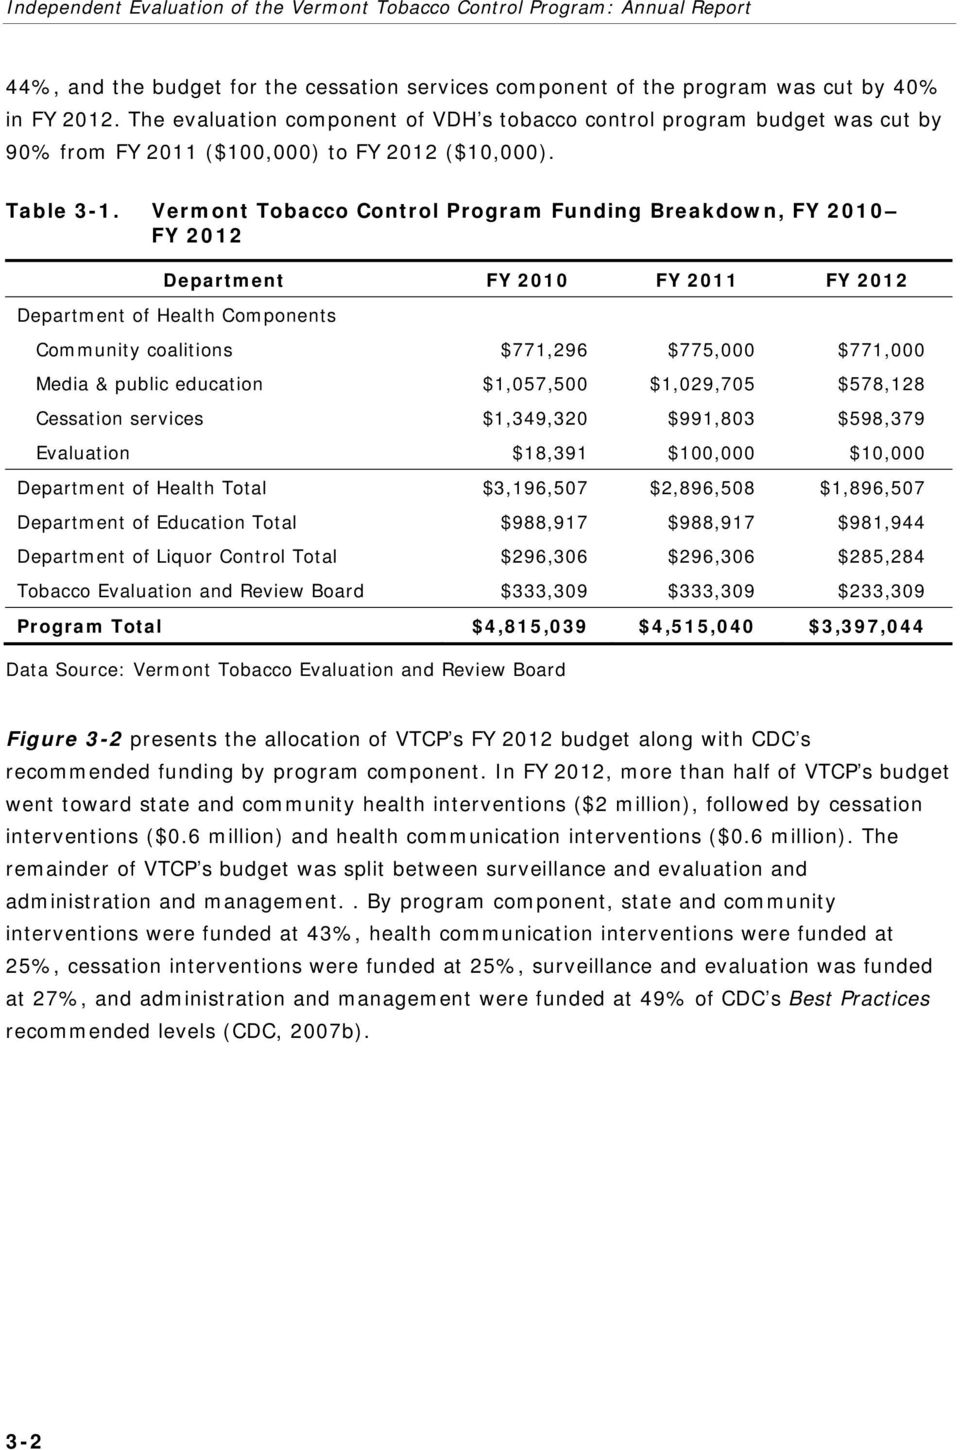 Vermont Tobacco Control Program Funding Breakdown, FY 2010 FY 2012 Department FY 2010 FY 2011 FY 2012 Department of Health Components Community coalitions $771,296 $775,000 $771,000 Media & public